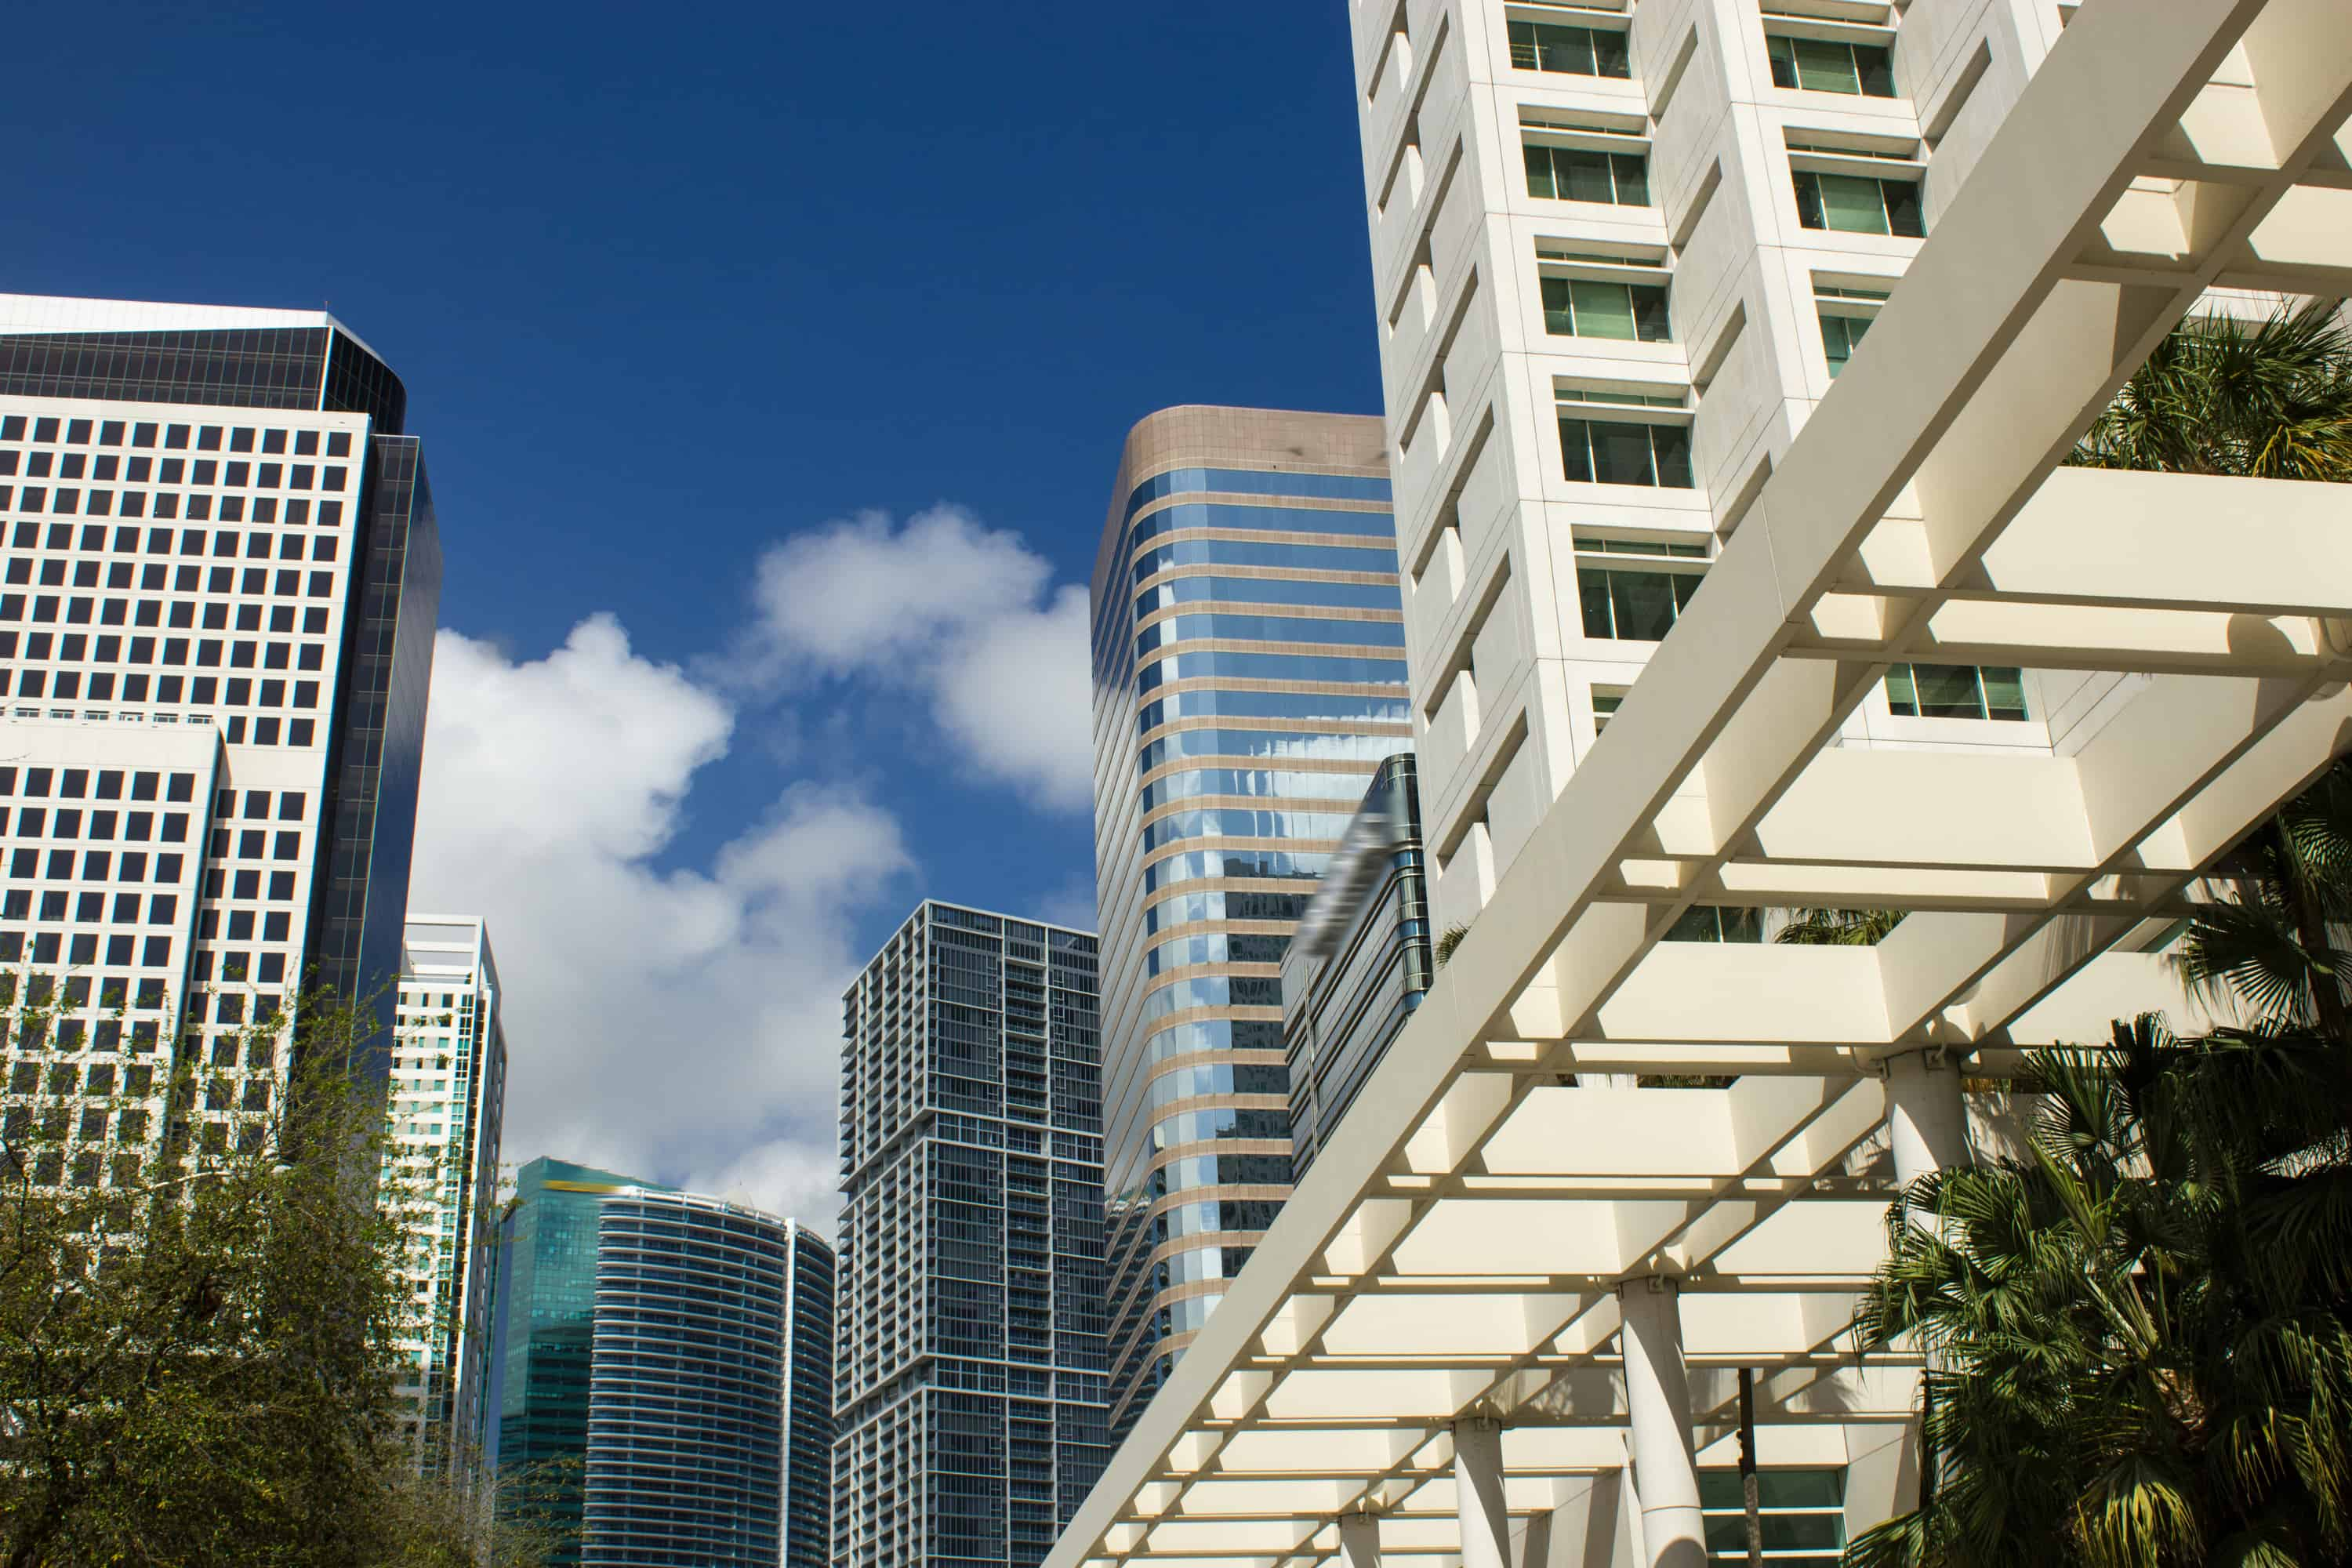 Business buildings in Miami Florida reaching for the sky